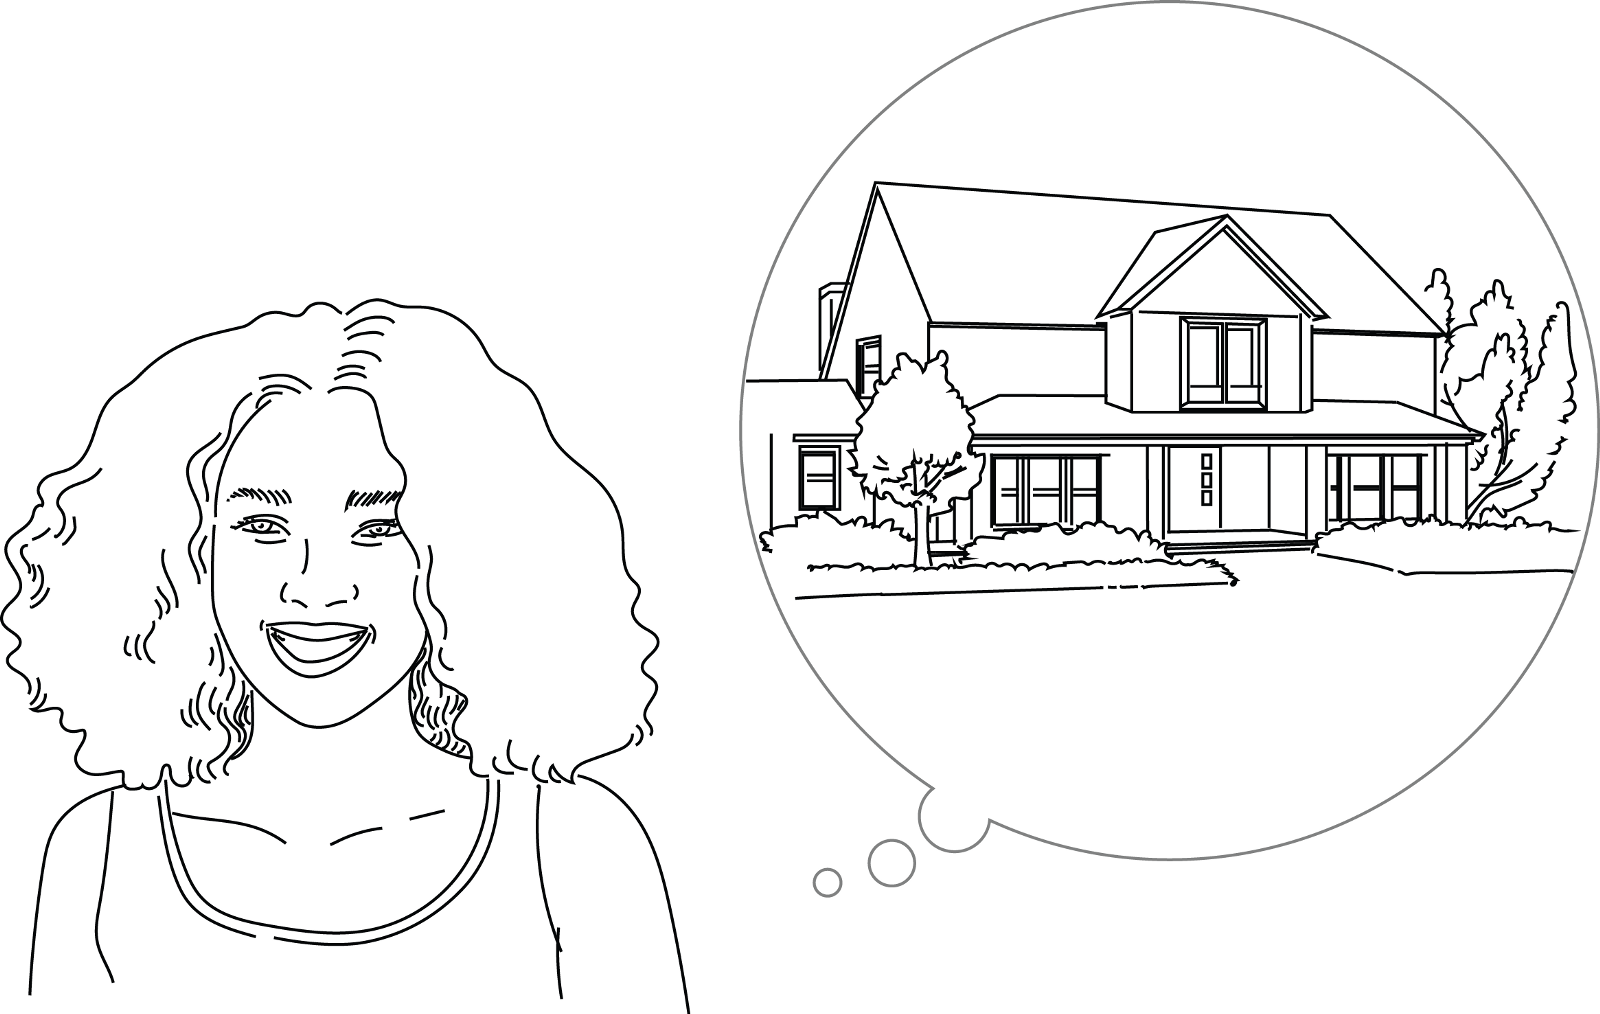 Humanizing the Real Estate Monster